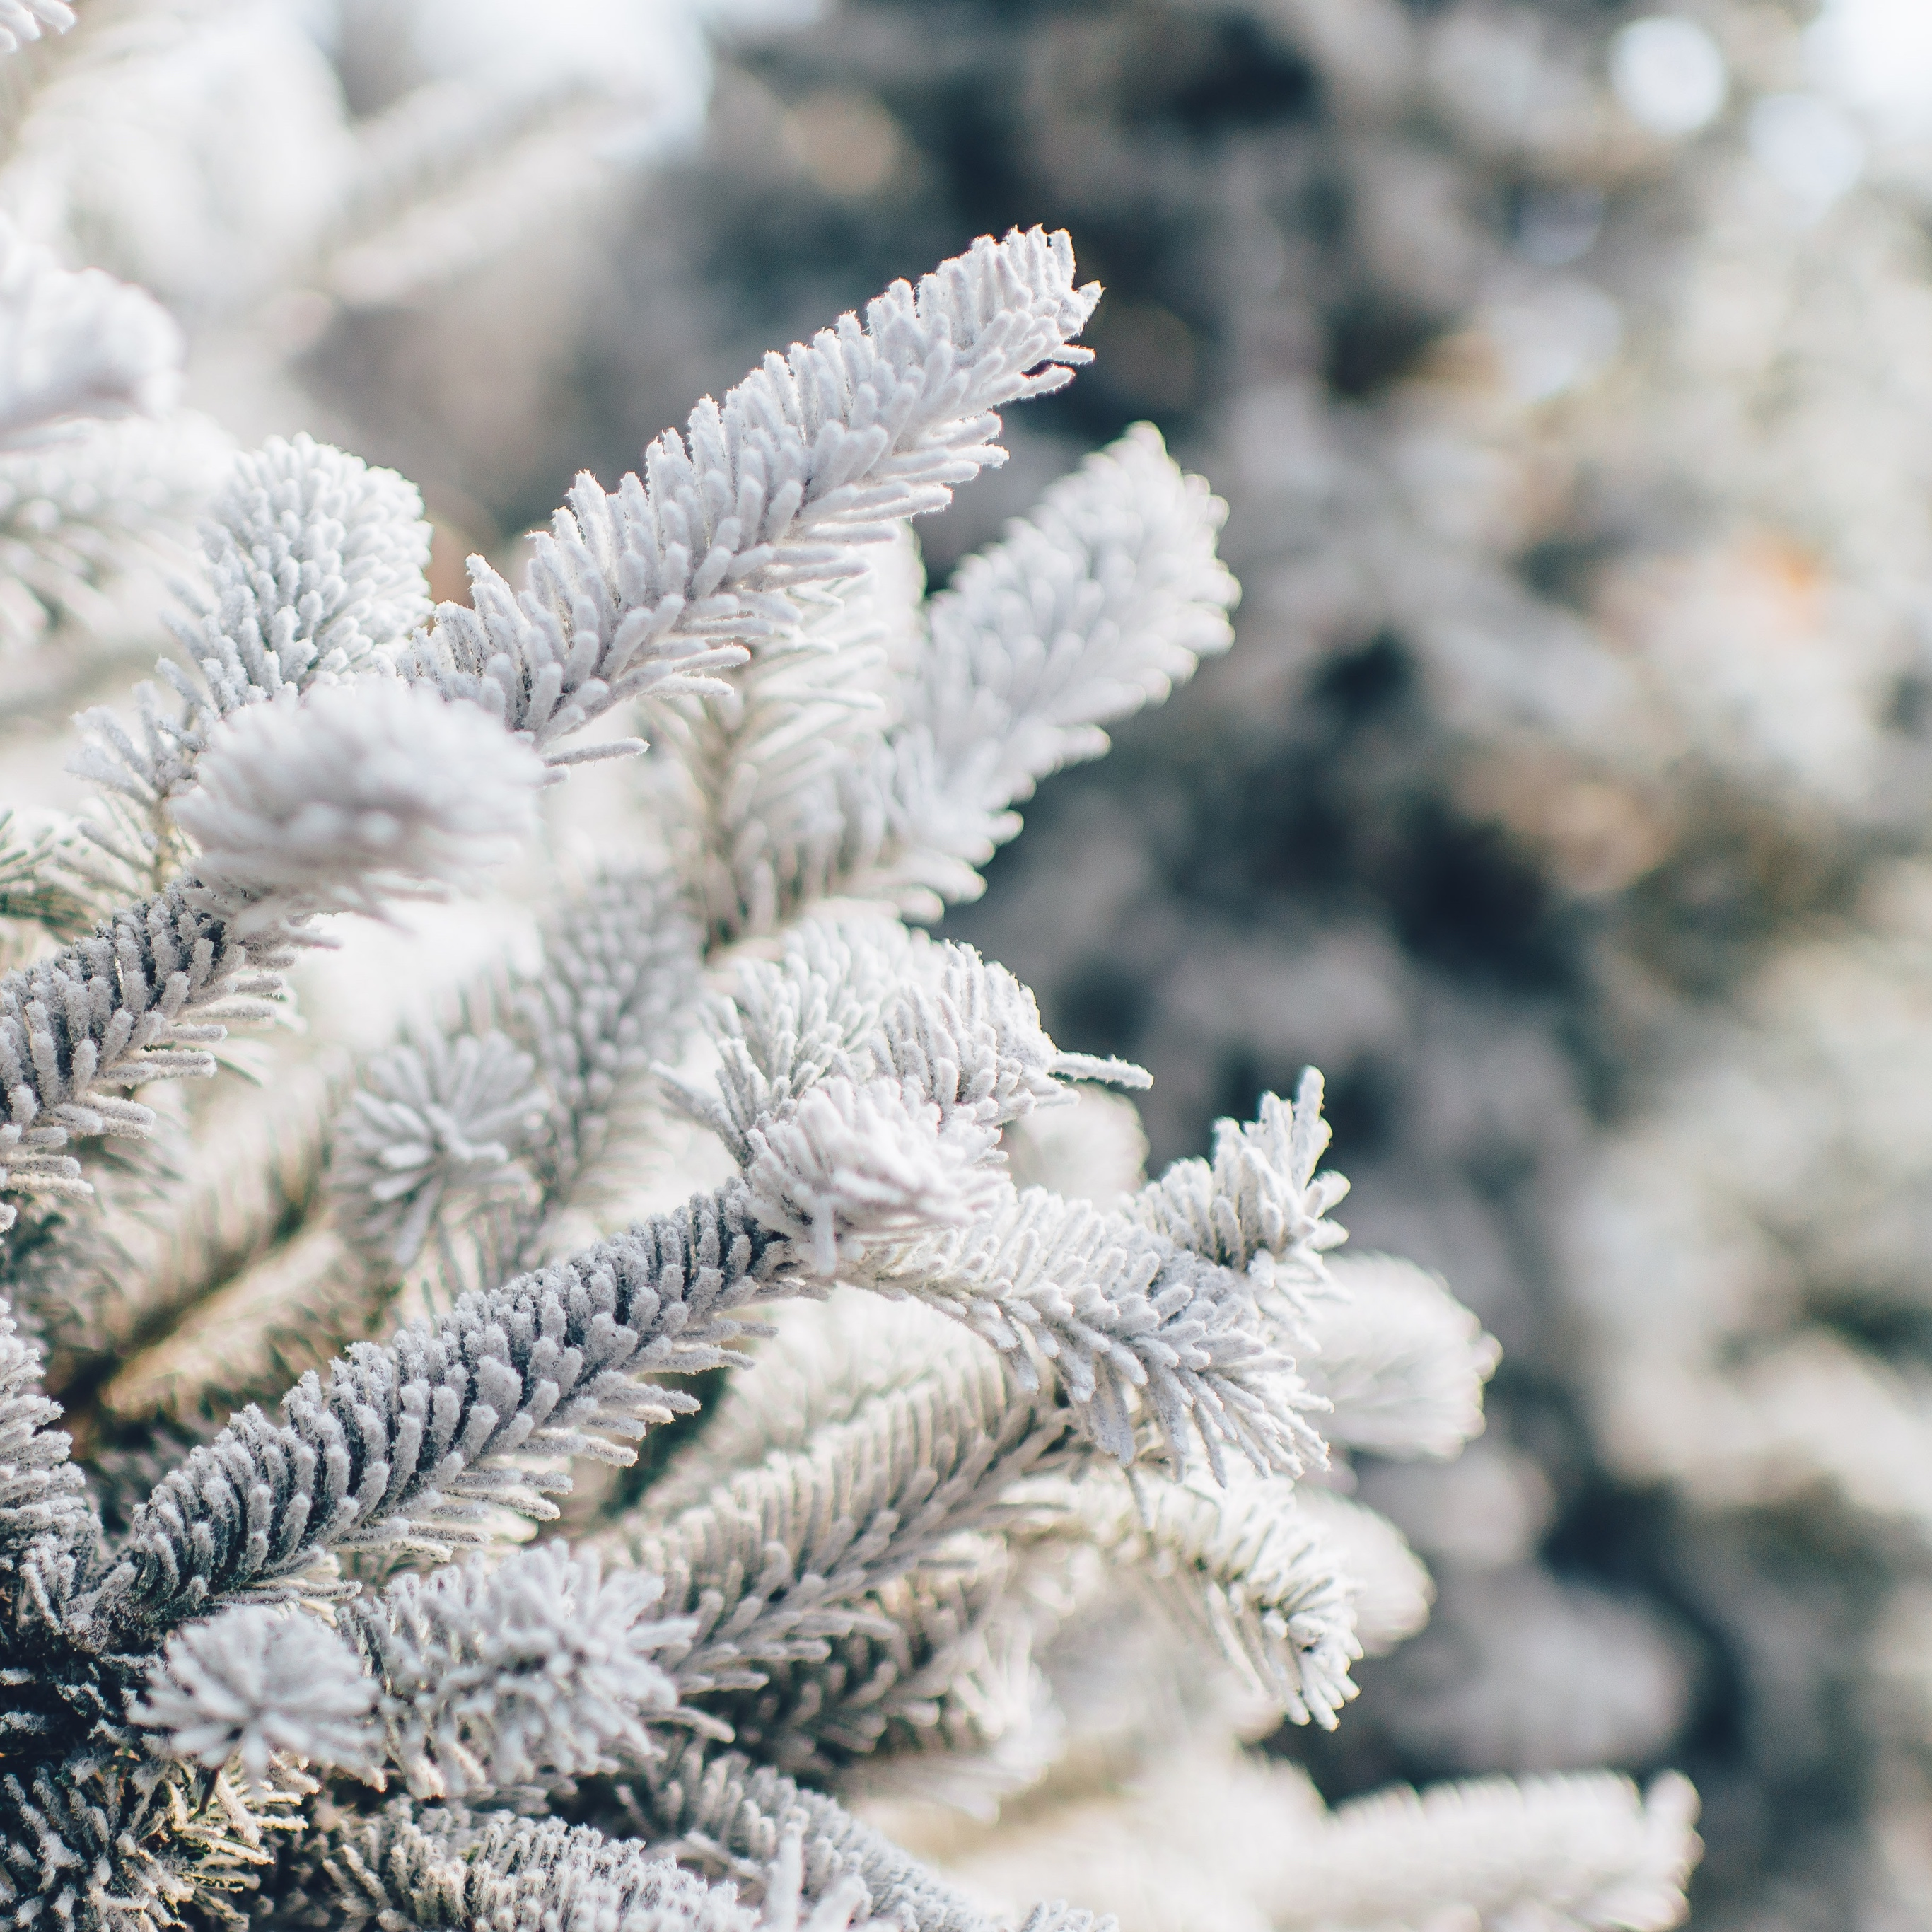 snow wallpaper evergreen idownloadblog unsplash ian schneider ipad